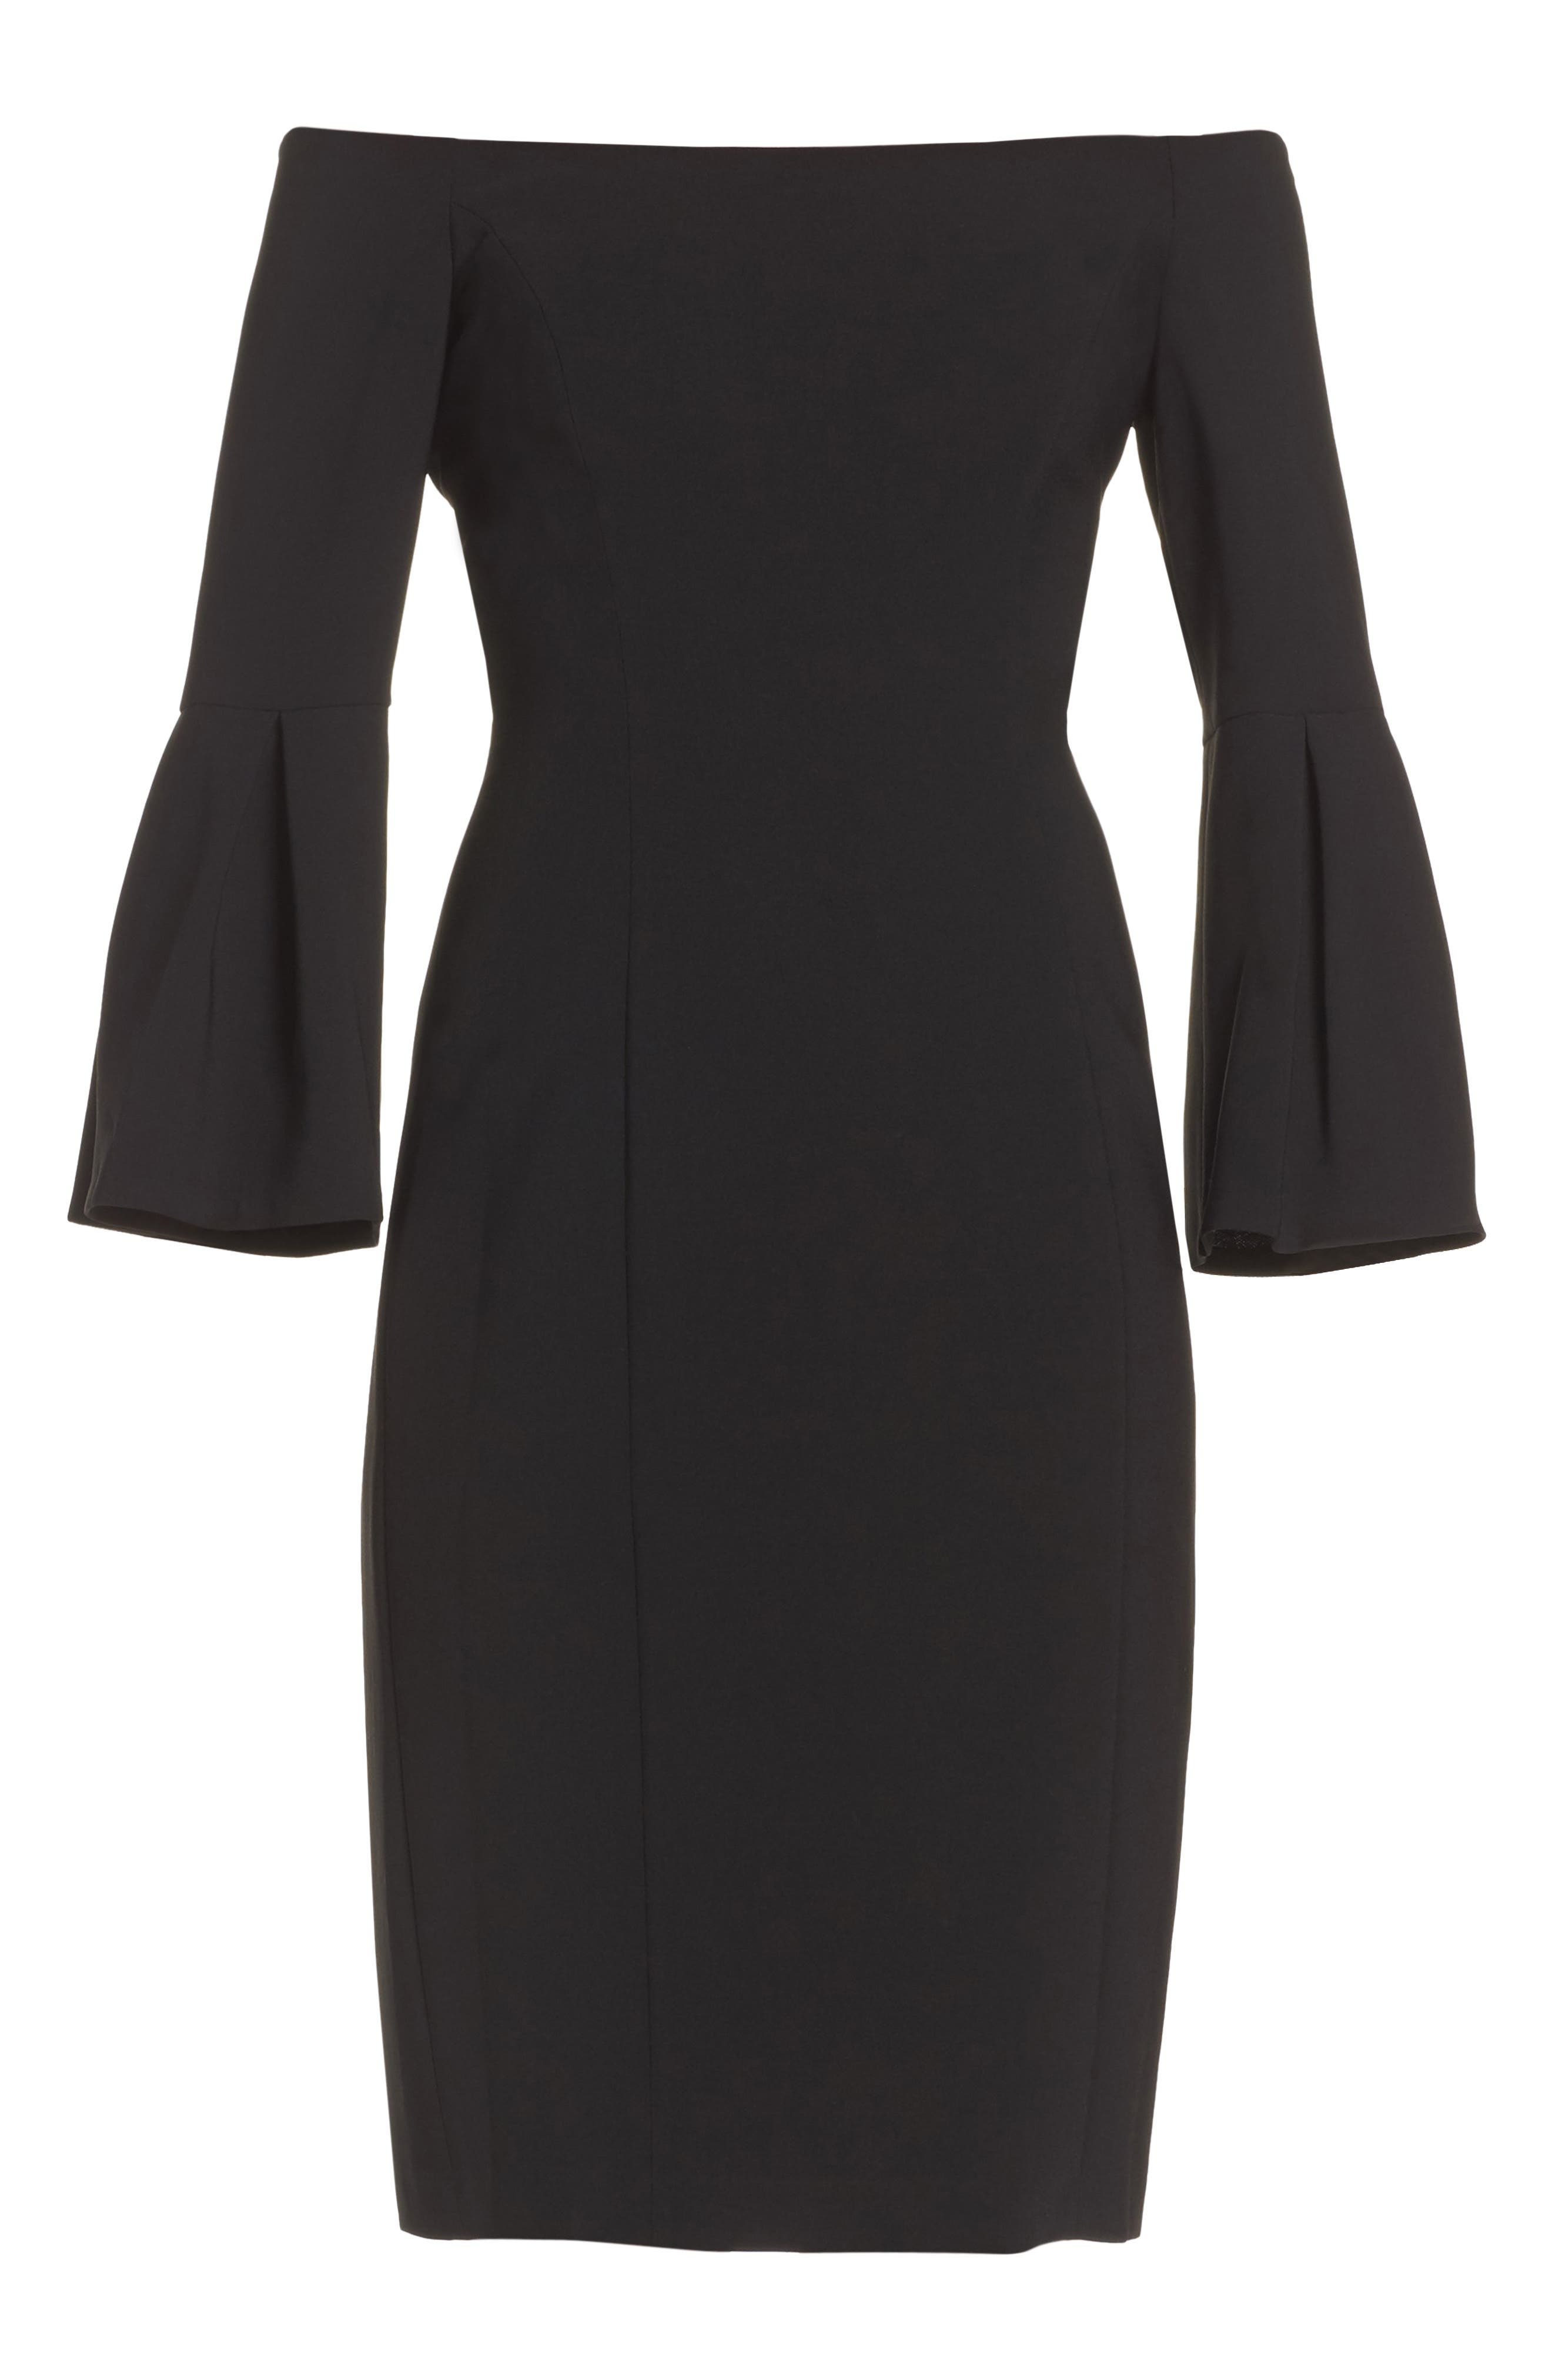 VINCE CAMUTO,                             Off the Shoulder Bell Sleeve Sheath Dress,                             Alternate thumbnail 6, color,                             001